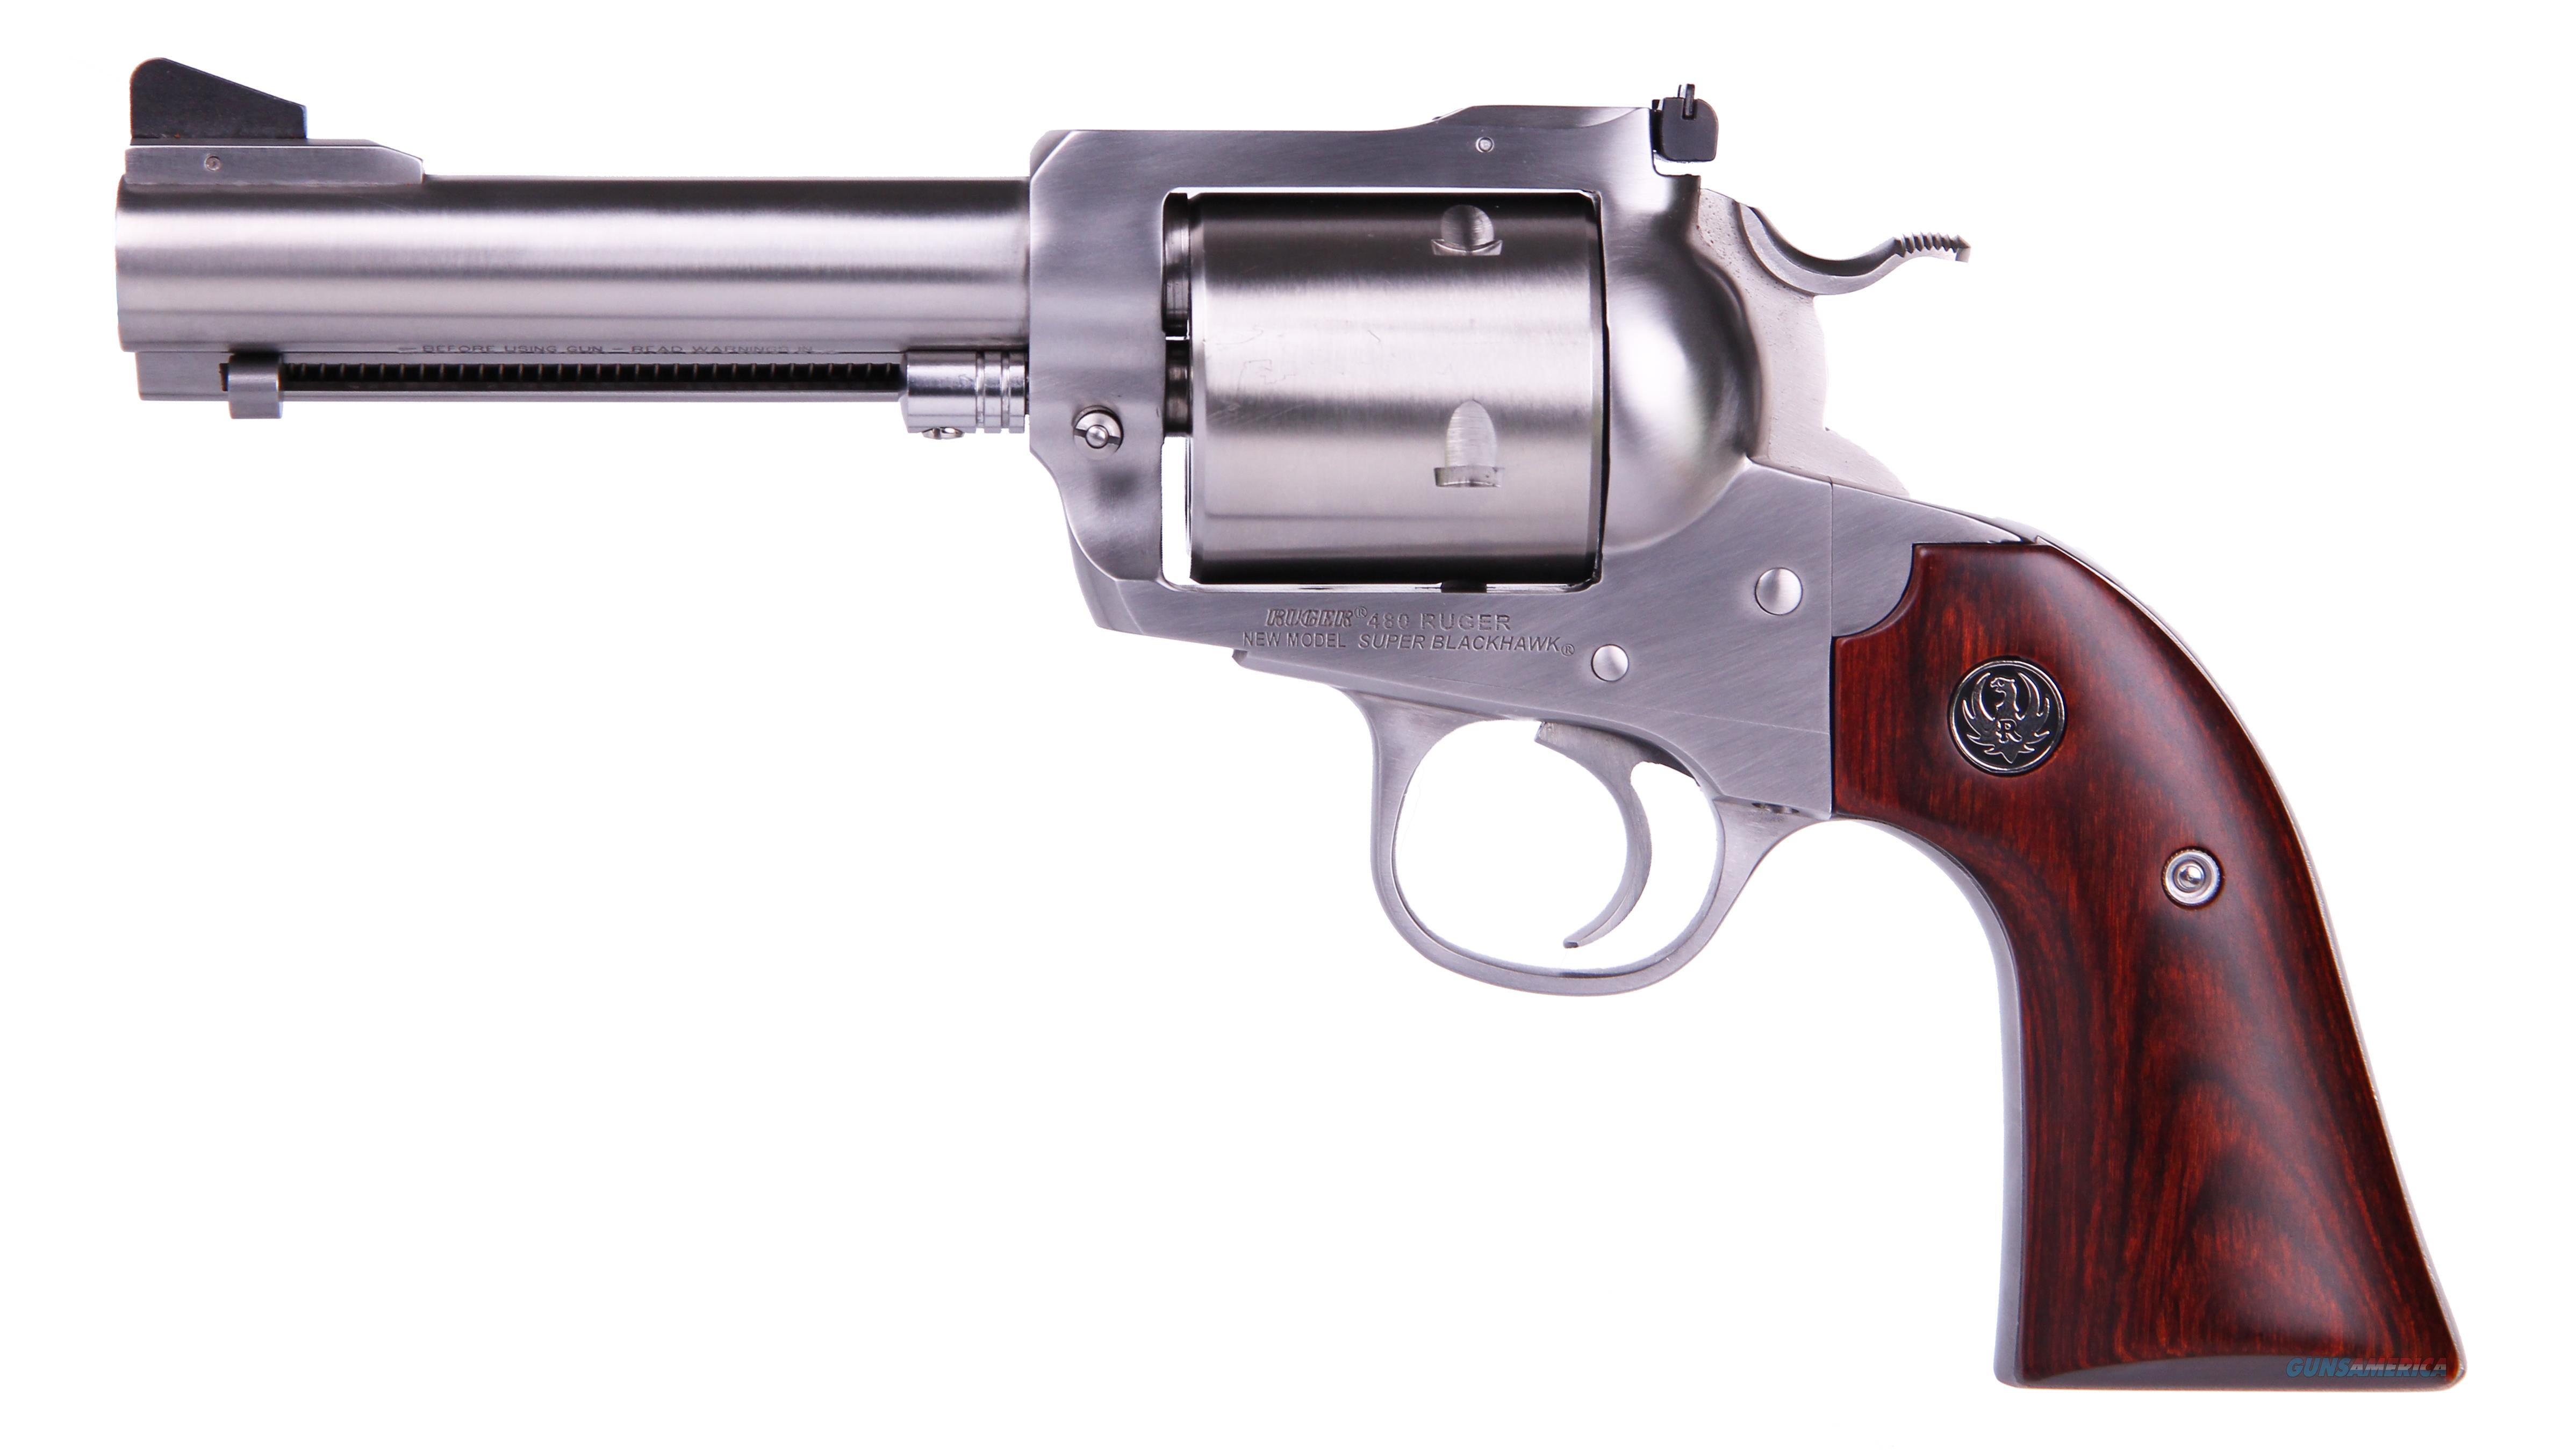 Ruger BISLEY 480RUG SS 4-5/8 5SH AS 0872 WOOD GRIPS/UNFLUTED CYL  Guns > Pistols > Ruger Single Action Revolvers > Cowboy Action